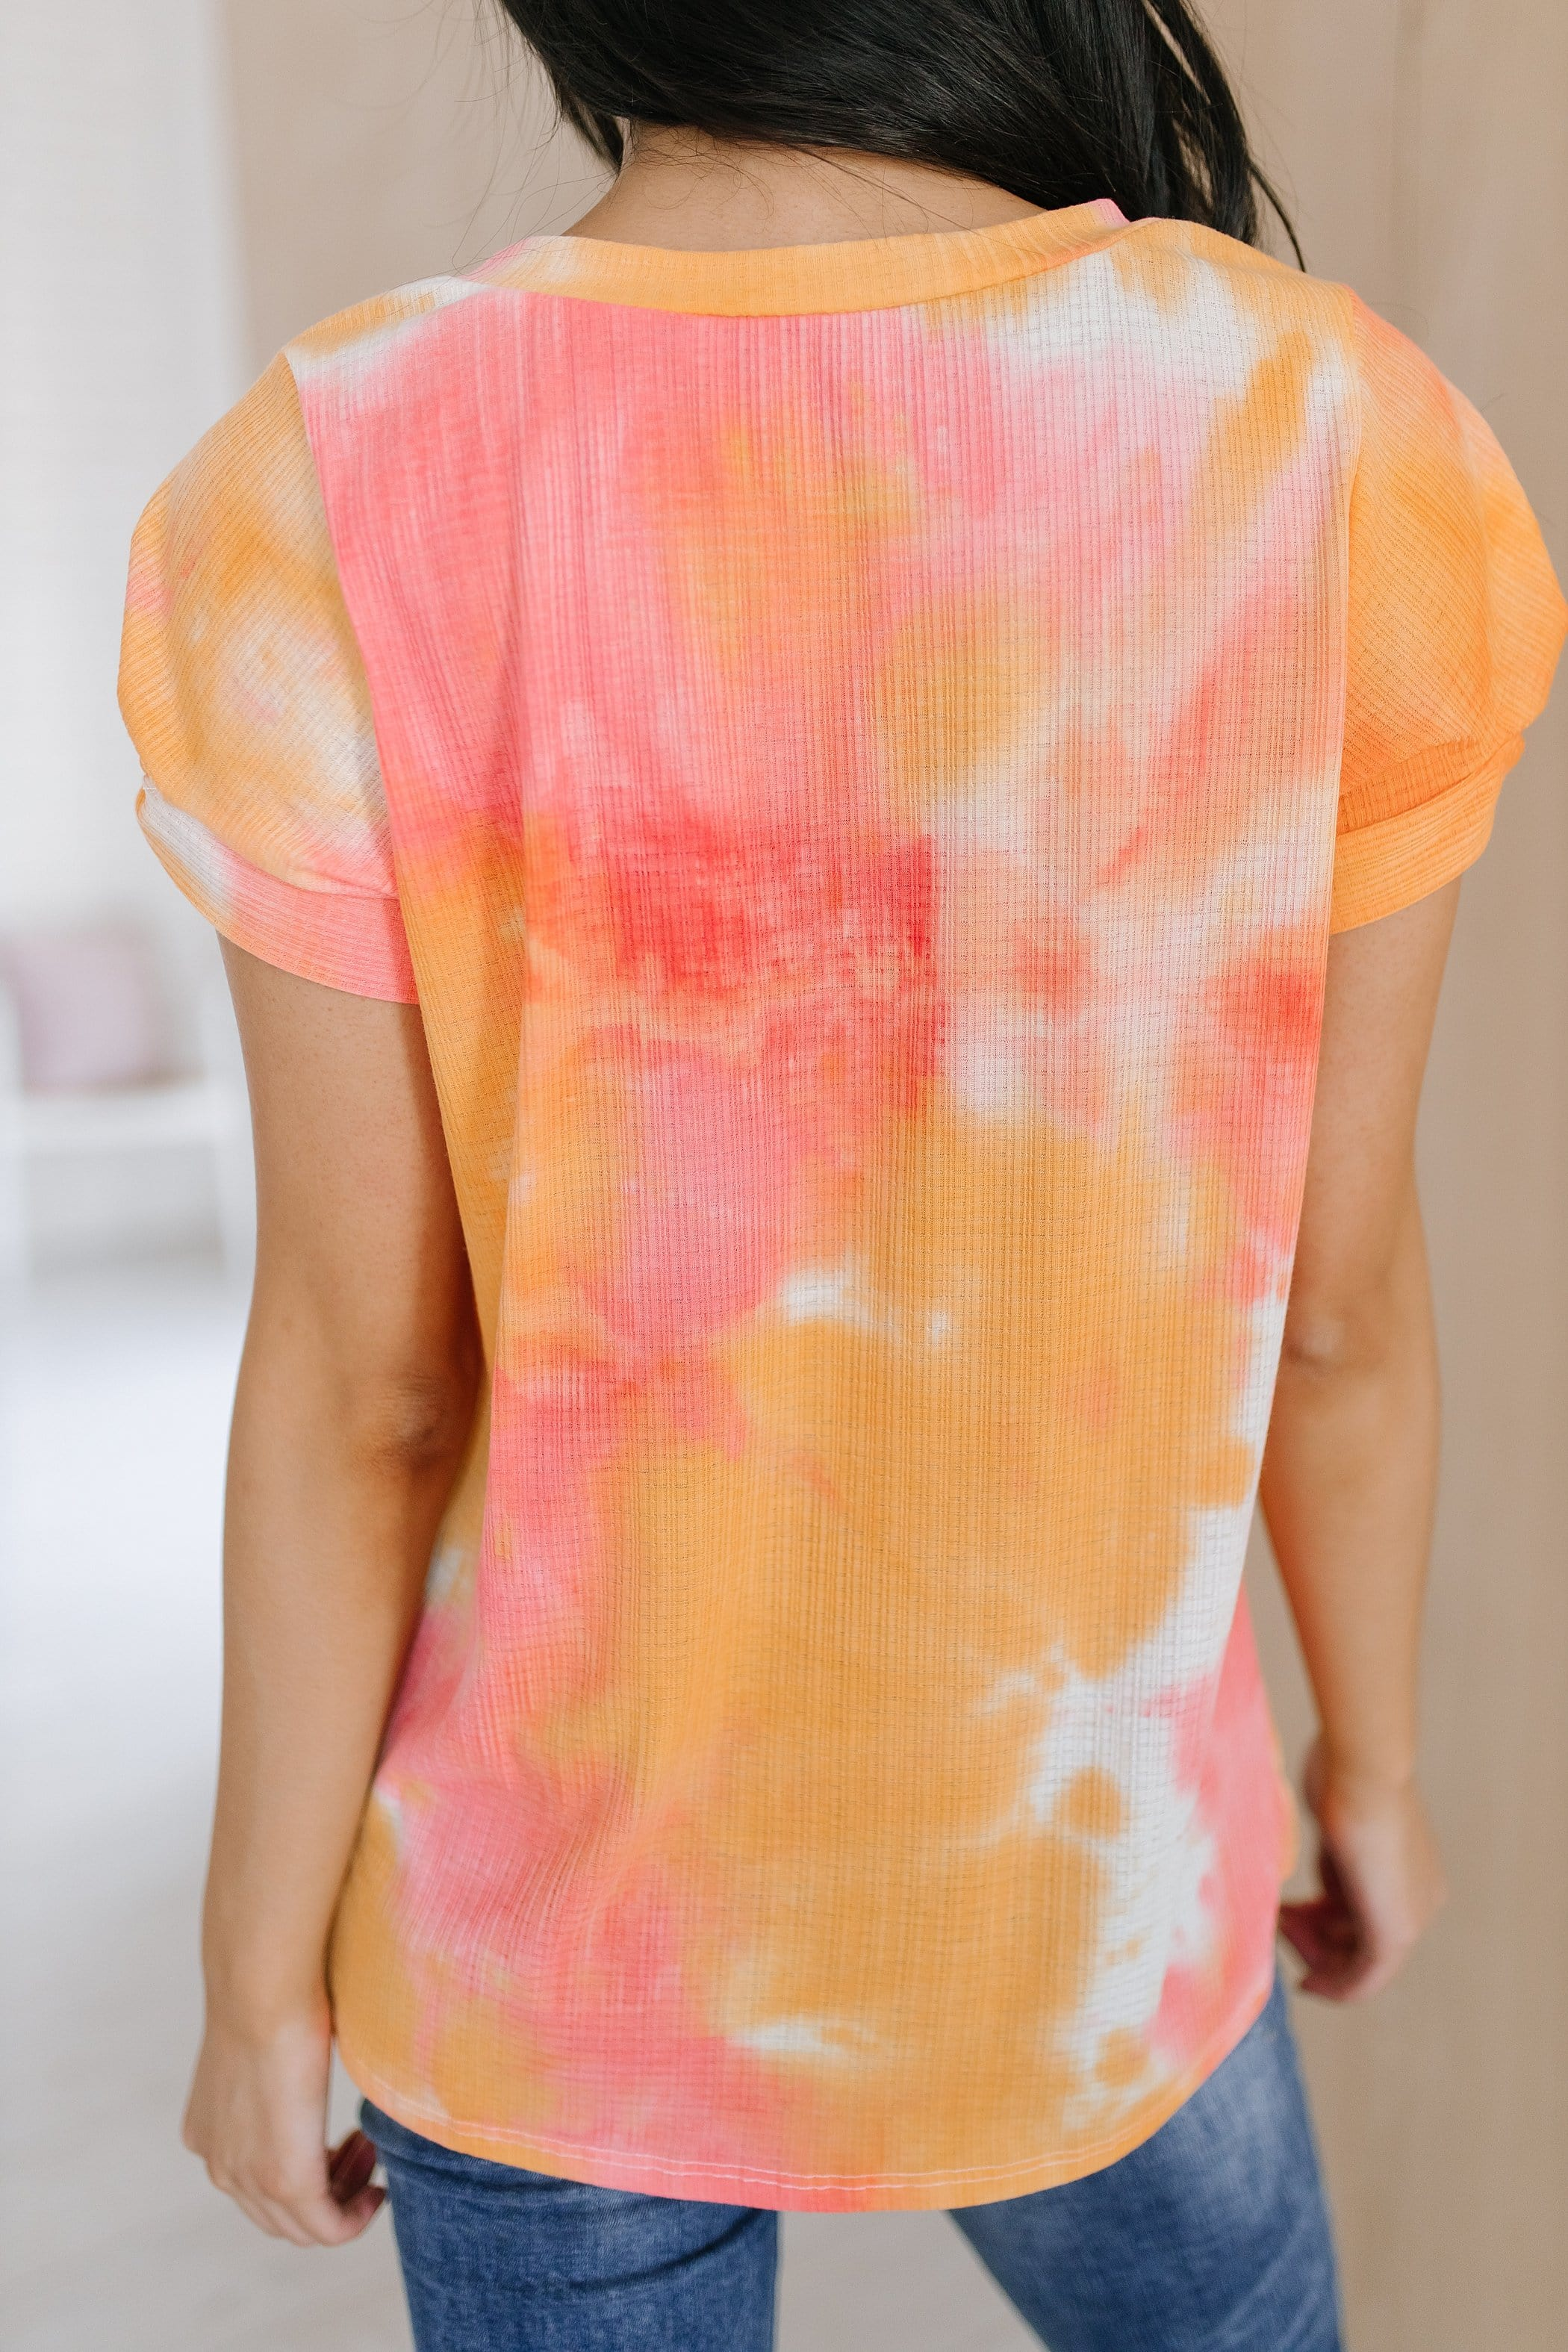 The Lora Knotted Sleeve Top in Tie Dye